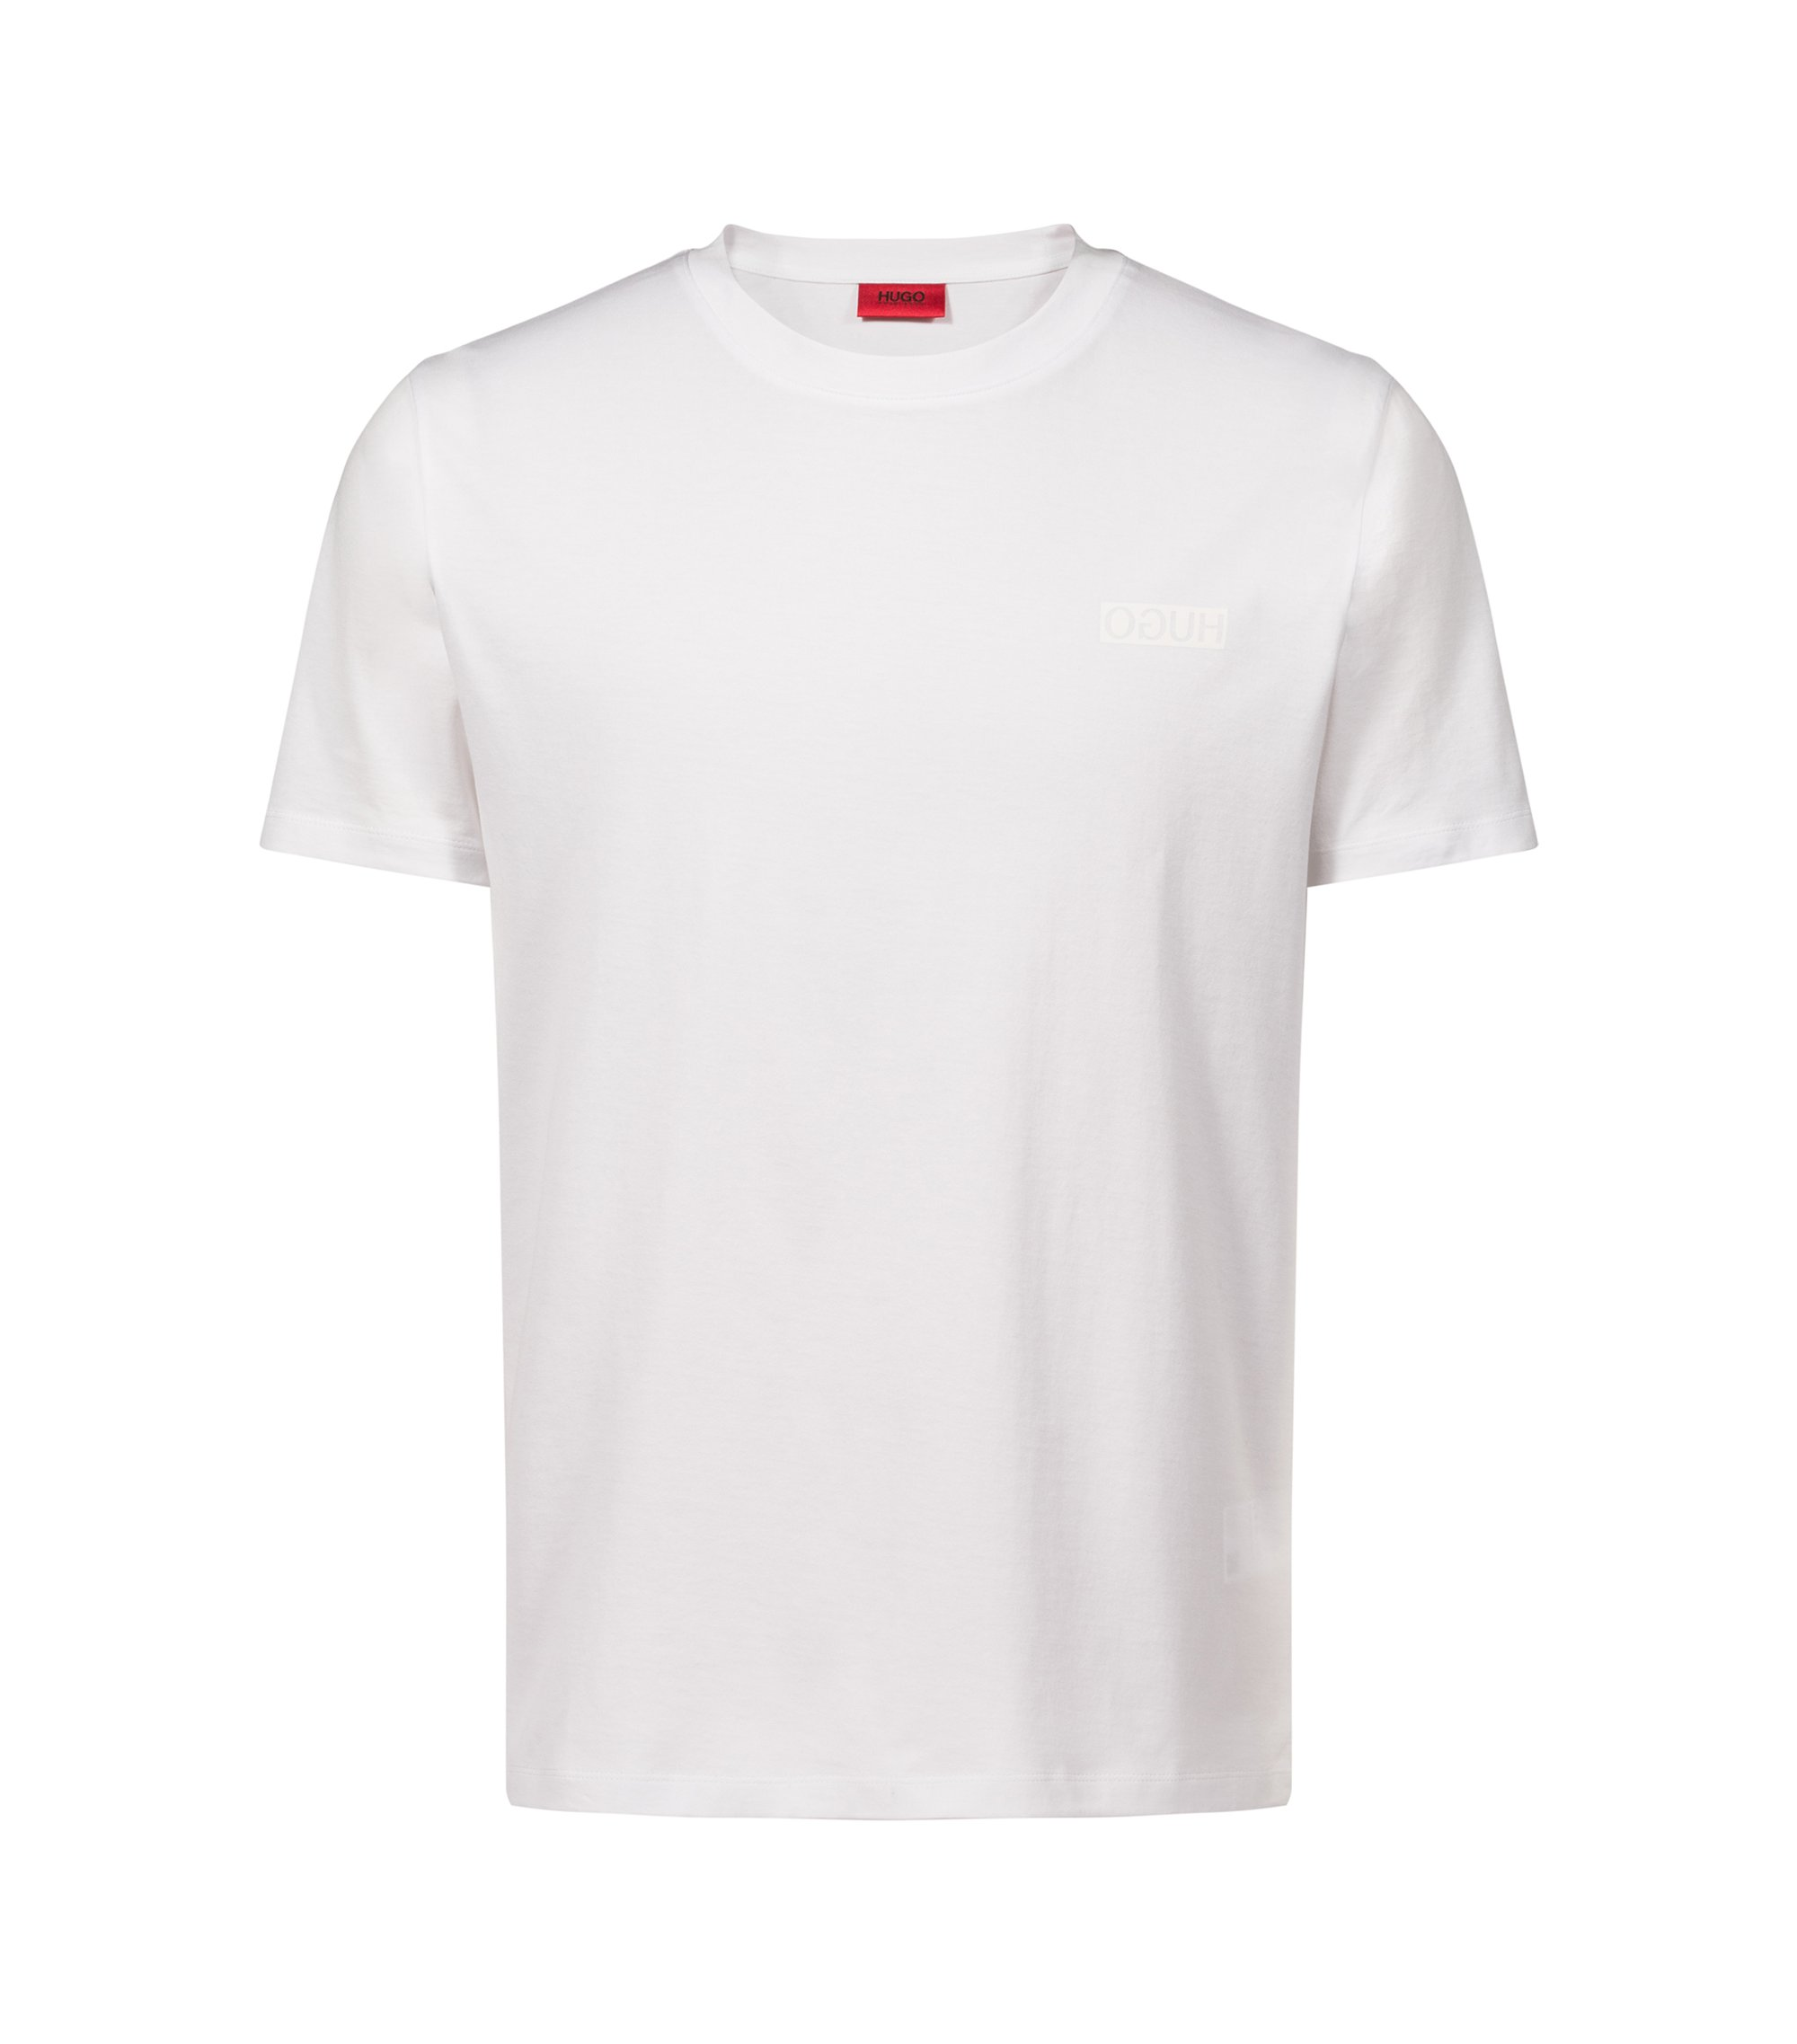 Cotton T-shirt with reverse logo, Weiß